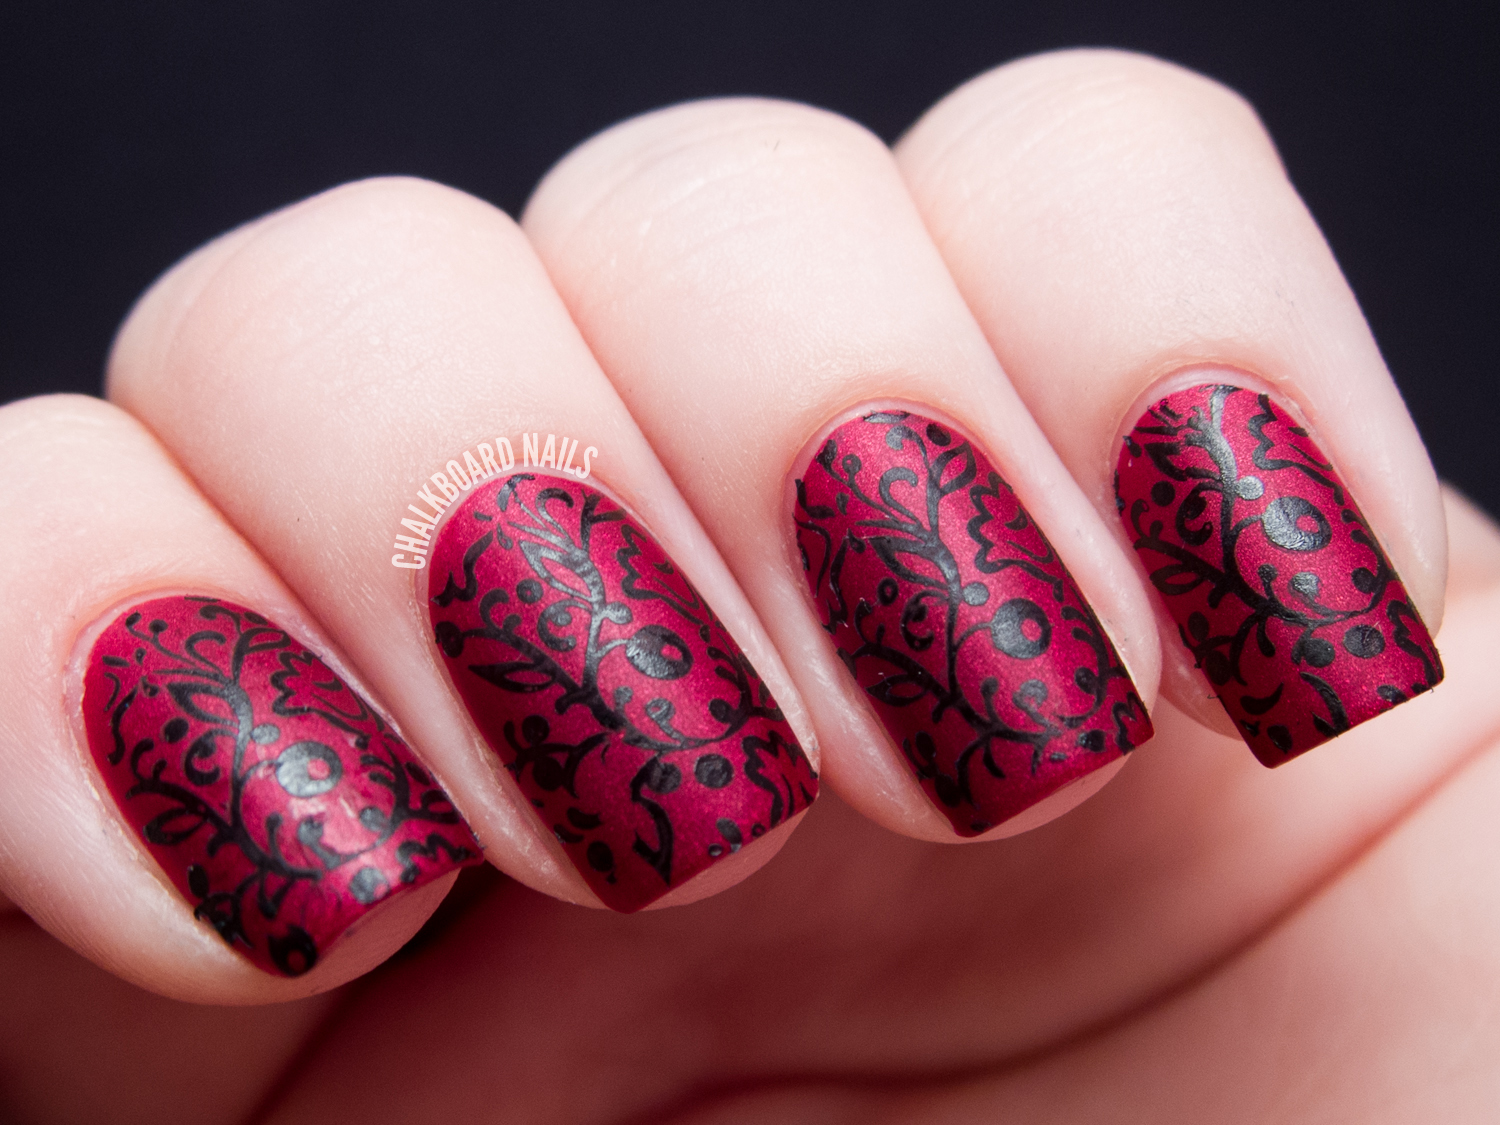 Velvet floral stamping chalkboard nails nail art blog i stamped the image using sally hansen night flight here is the entire look with the original matte finish prinsesfo Gallery